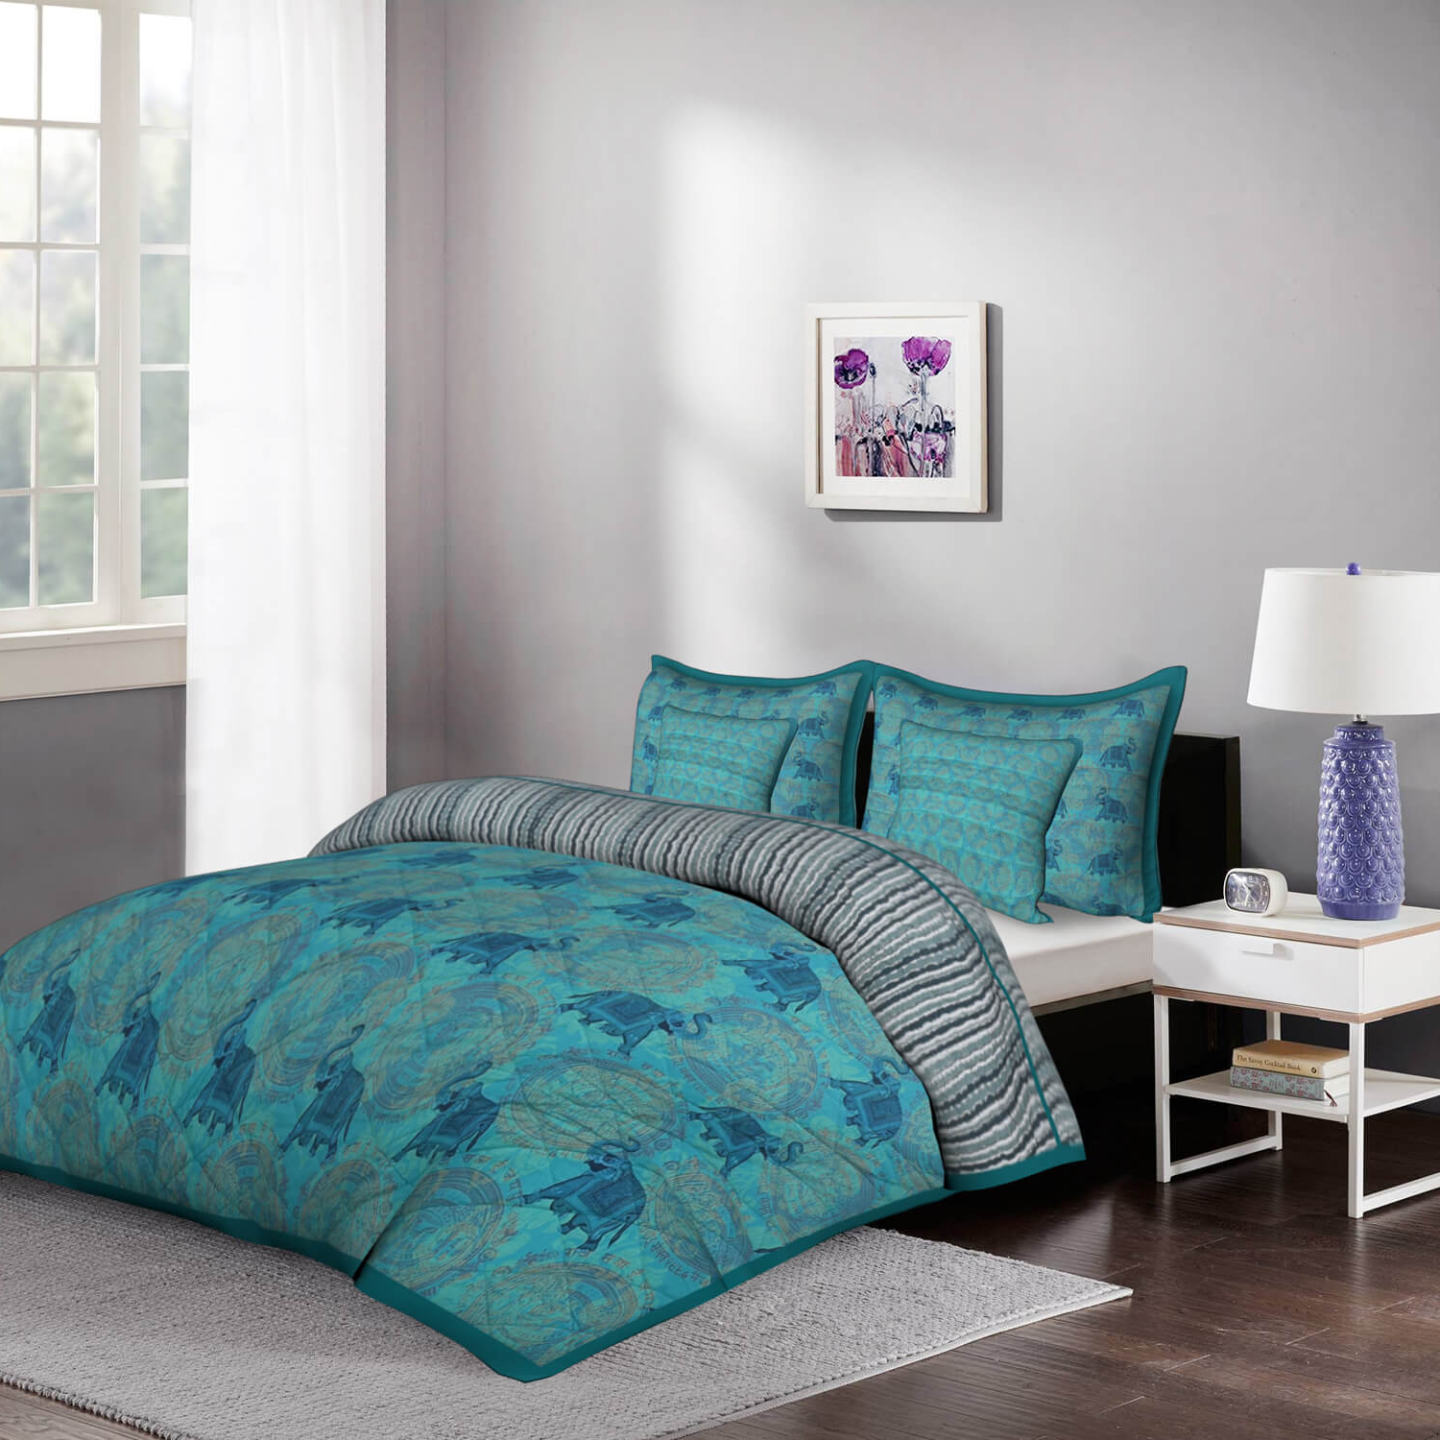 Green Ele 5 Piece Piece King Size Cotton Quilted Bedspread